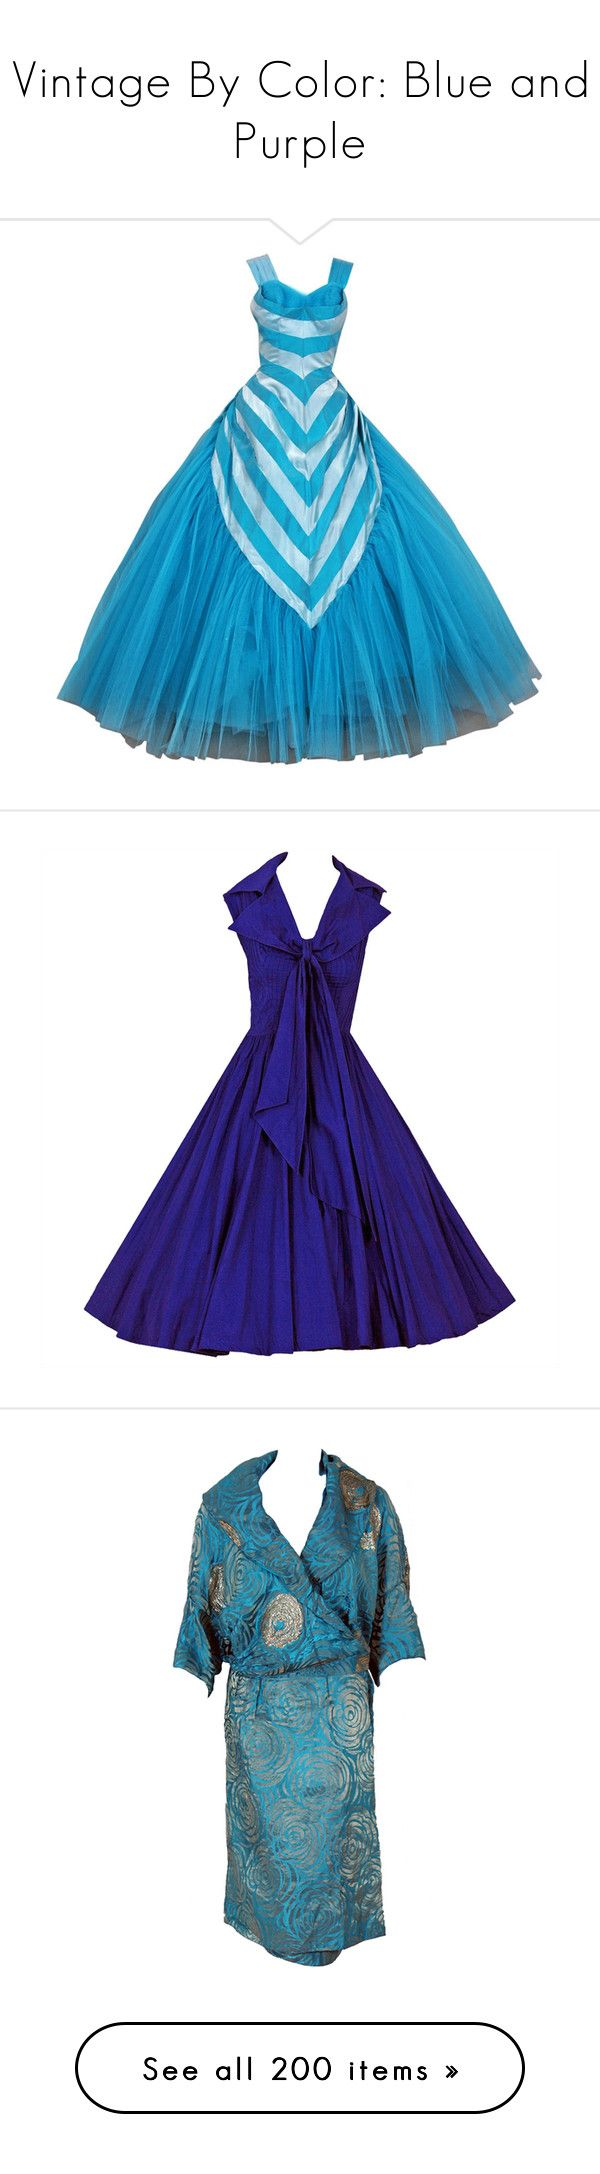 """""""Vintage By Color: Blue and Purple"""" by kellymailinglist ❤ liked on Polyvore featuring dresses, outerwear, coats, gowns, white dress, white velvet dress, purple tea length dresses, tea length party dresses, purple white dress and roaring 20s dress"""